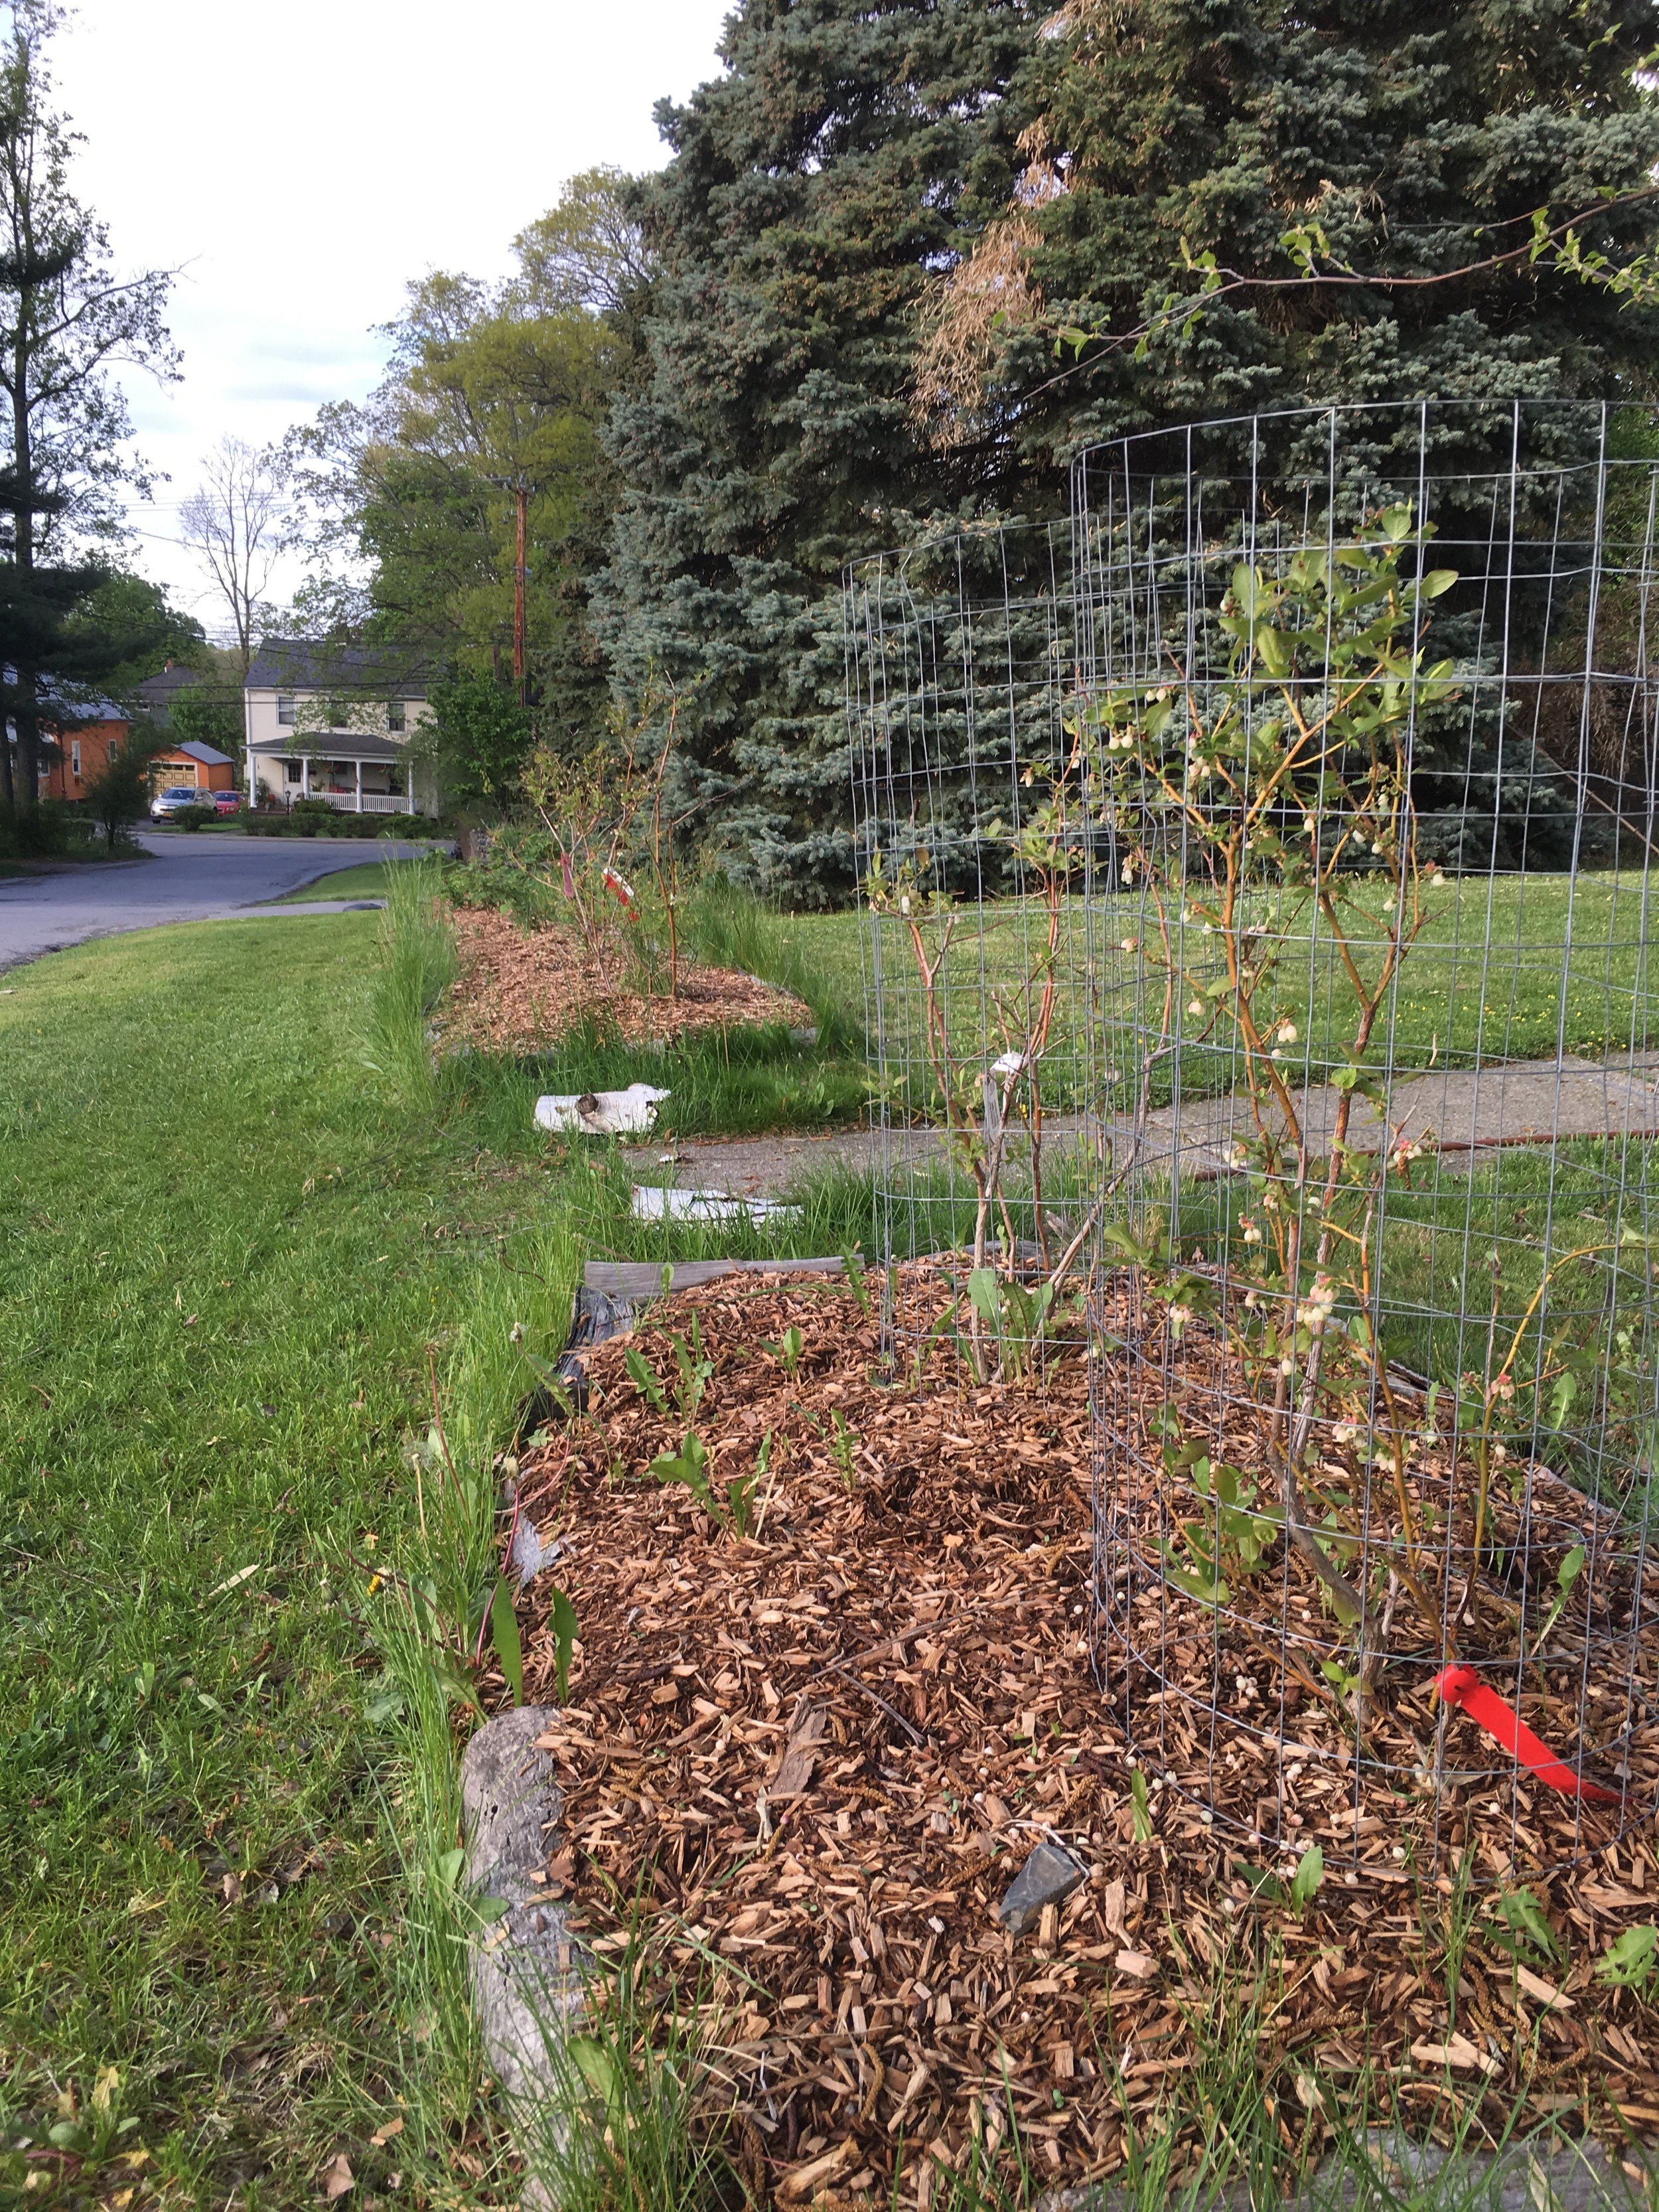 2015- Blueberres remain in the streetside berry hedge